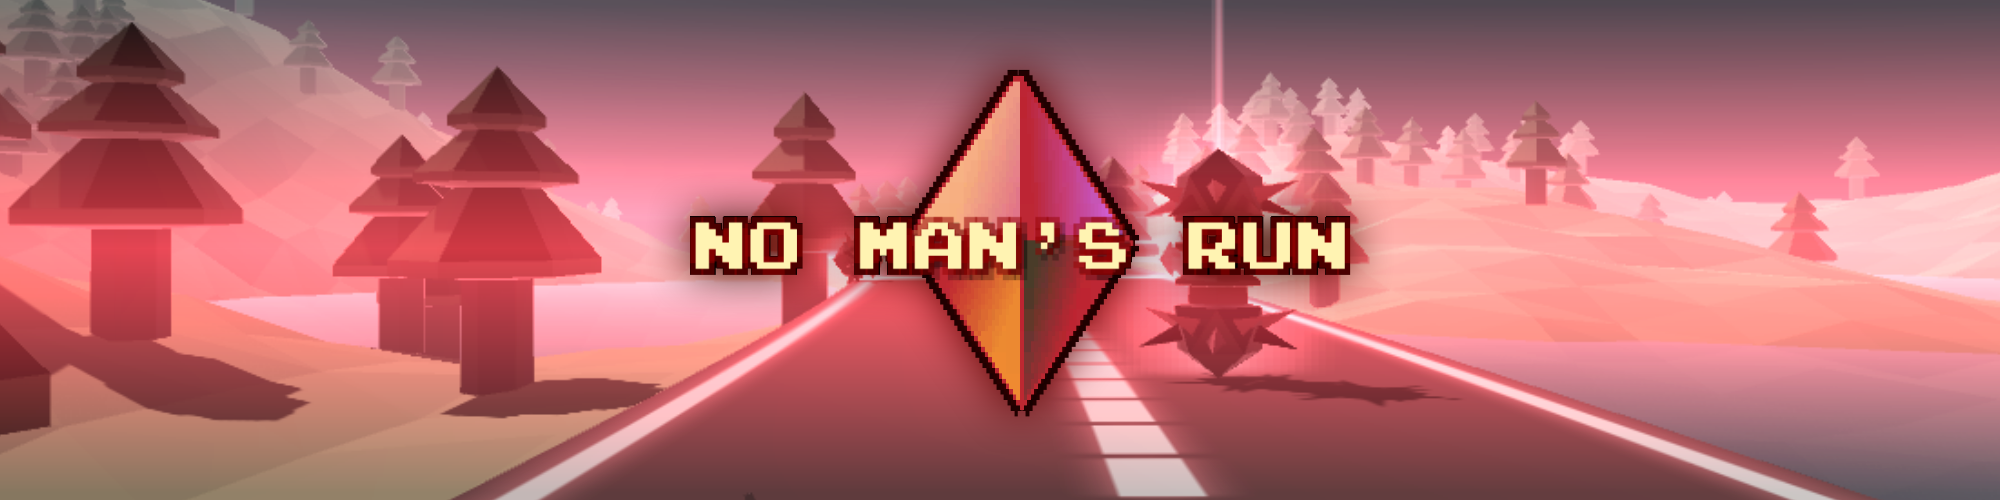 No Man's Run